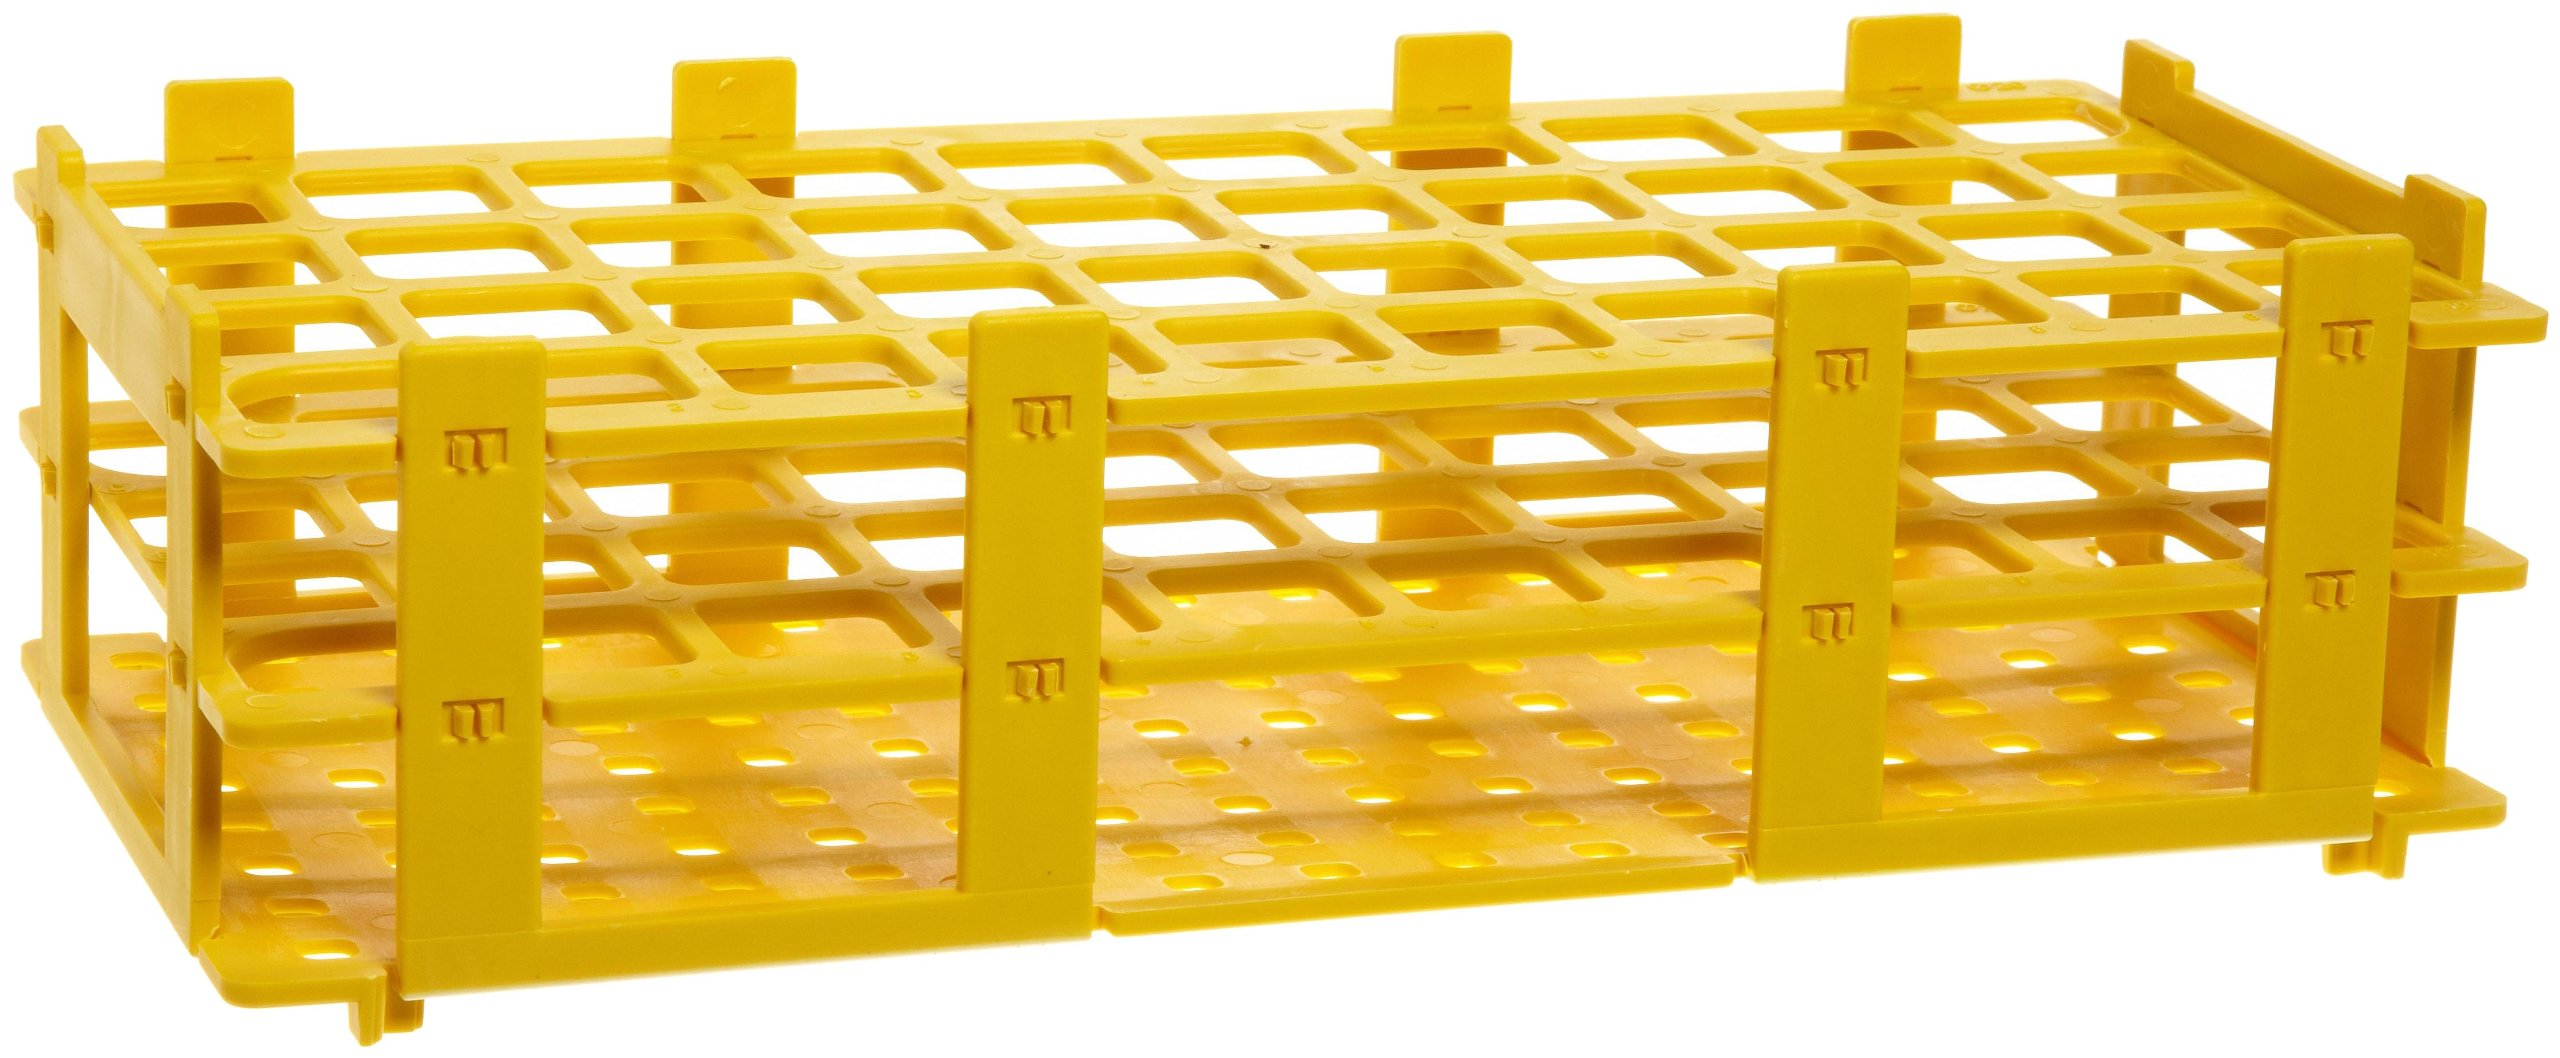 BrandTech 4340023 20mm 40 Tubes Yellow Polypropylene Test Tube Rack, 4 x 10 Tube, -20 to 90 Degree C Operating Temperature (Pack of 5)